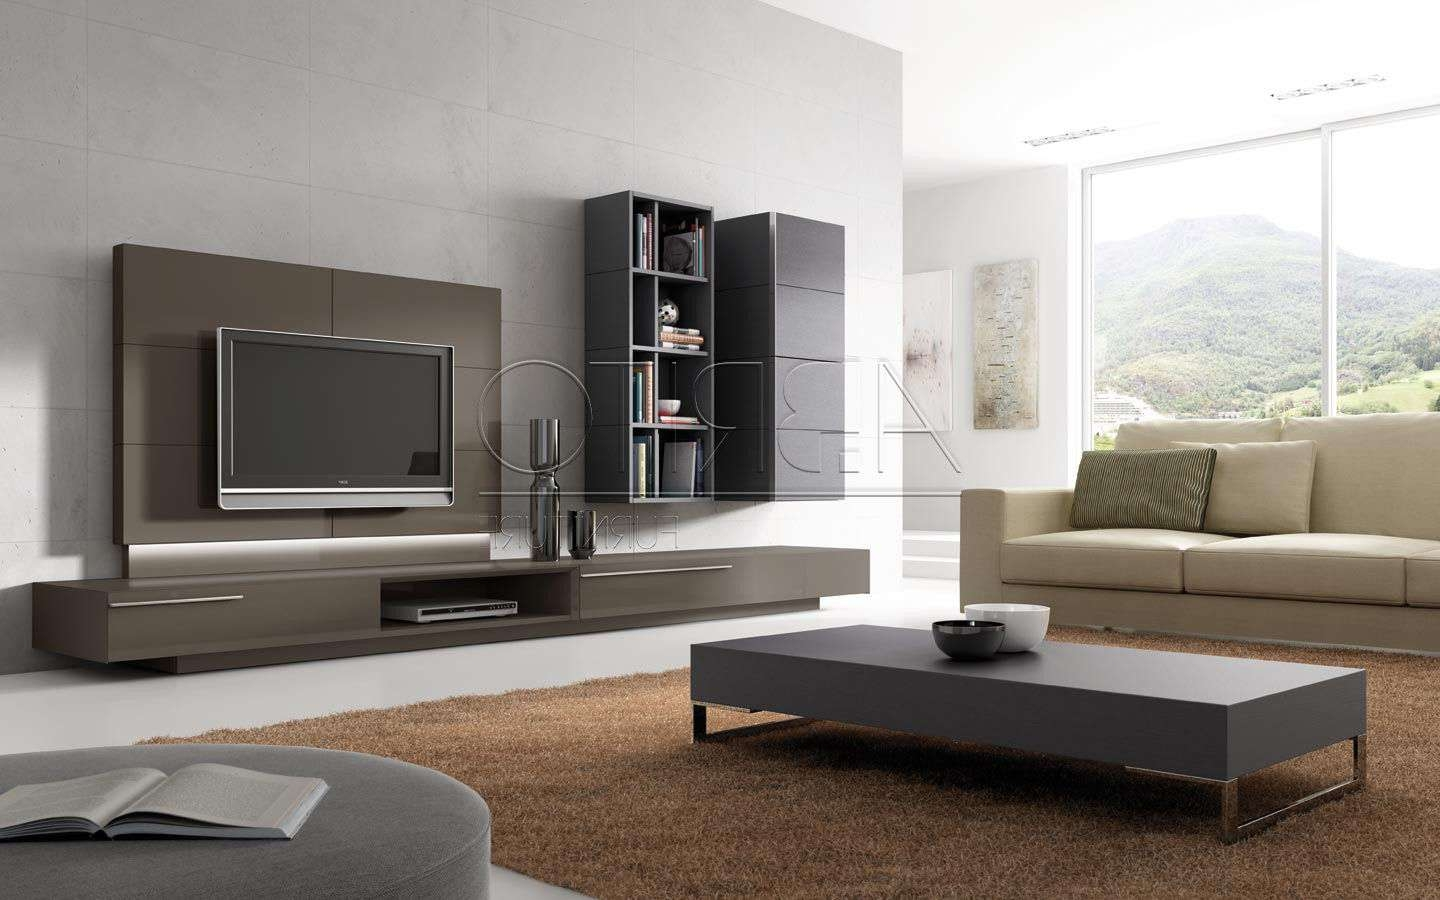 Furniture: Coffee Table And Aera Rug With Ottoman Also Modern Tv With Regard To Modern Tv Cabinets (View 13 of 20)